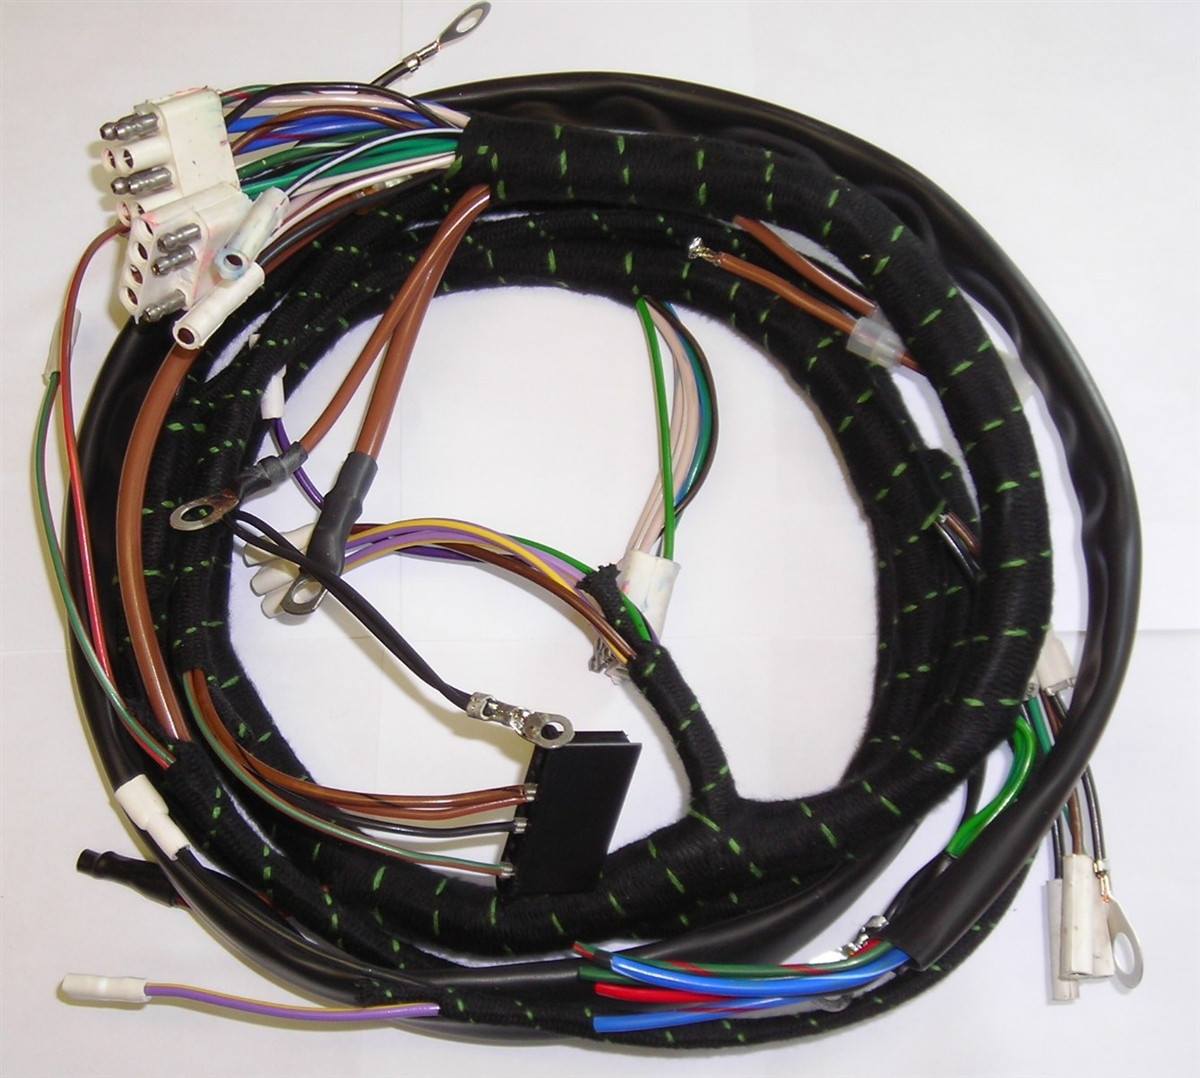 1309 2?1353488239 xke forward wiring harness jaguar wiring harness at reclaimingppi.co